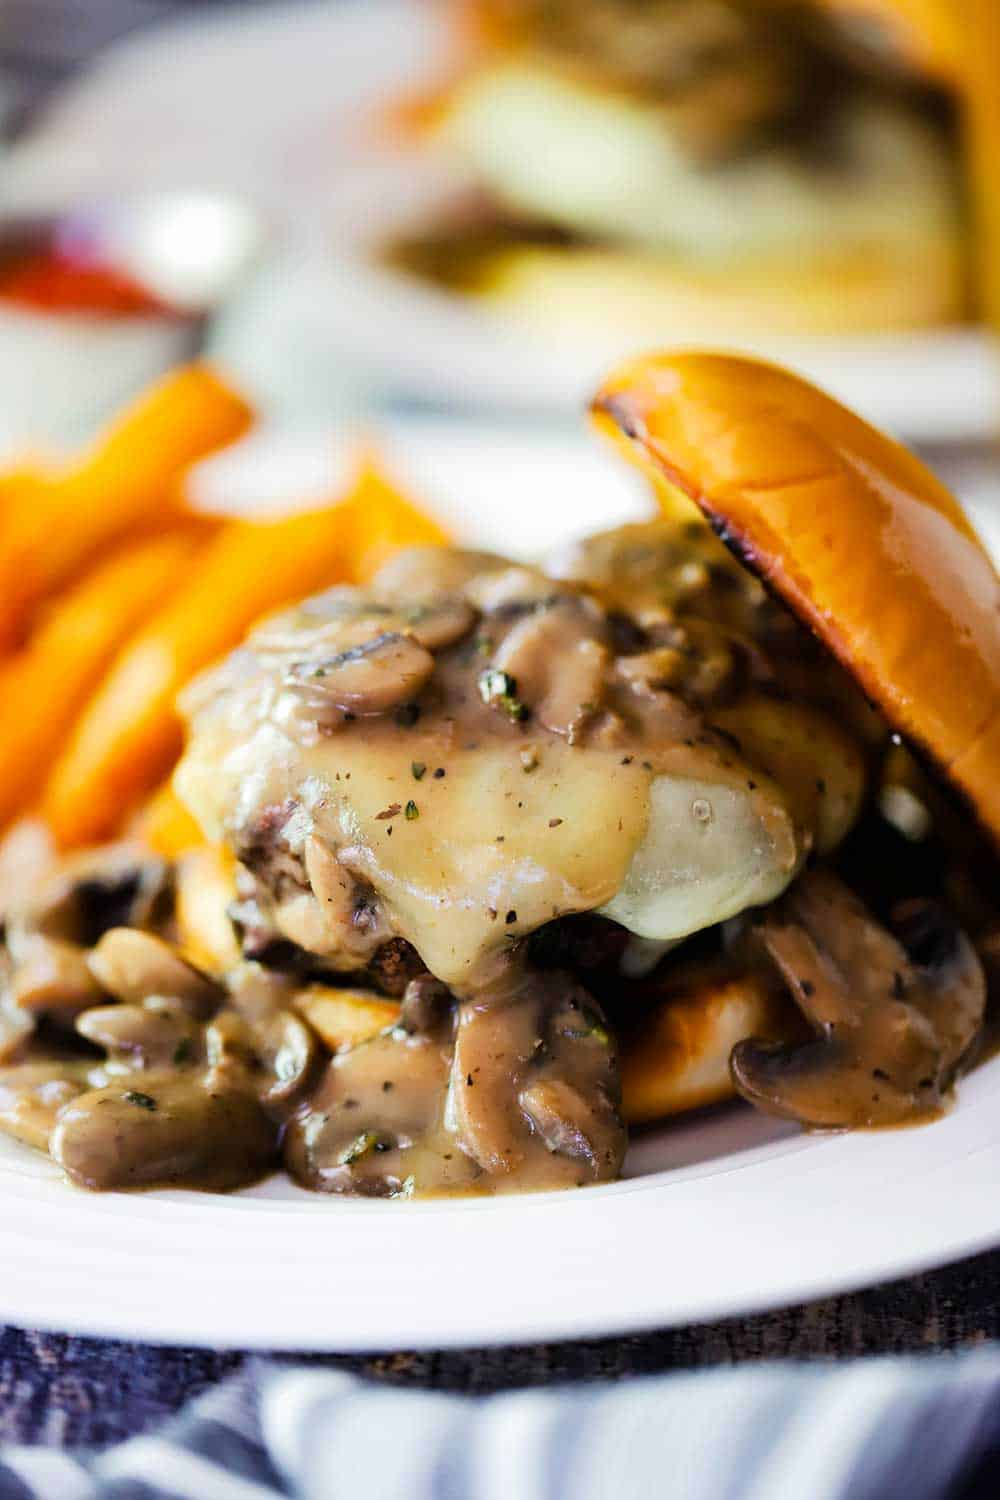 A close up view of a mushroom Swiss burger on a white plate with a pile of French fries next to it.